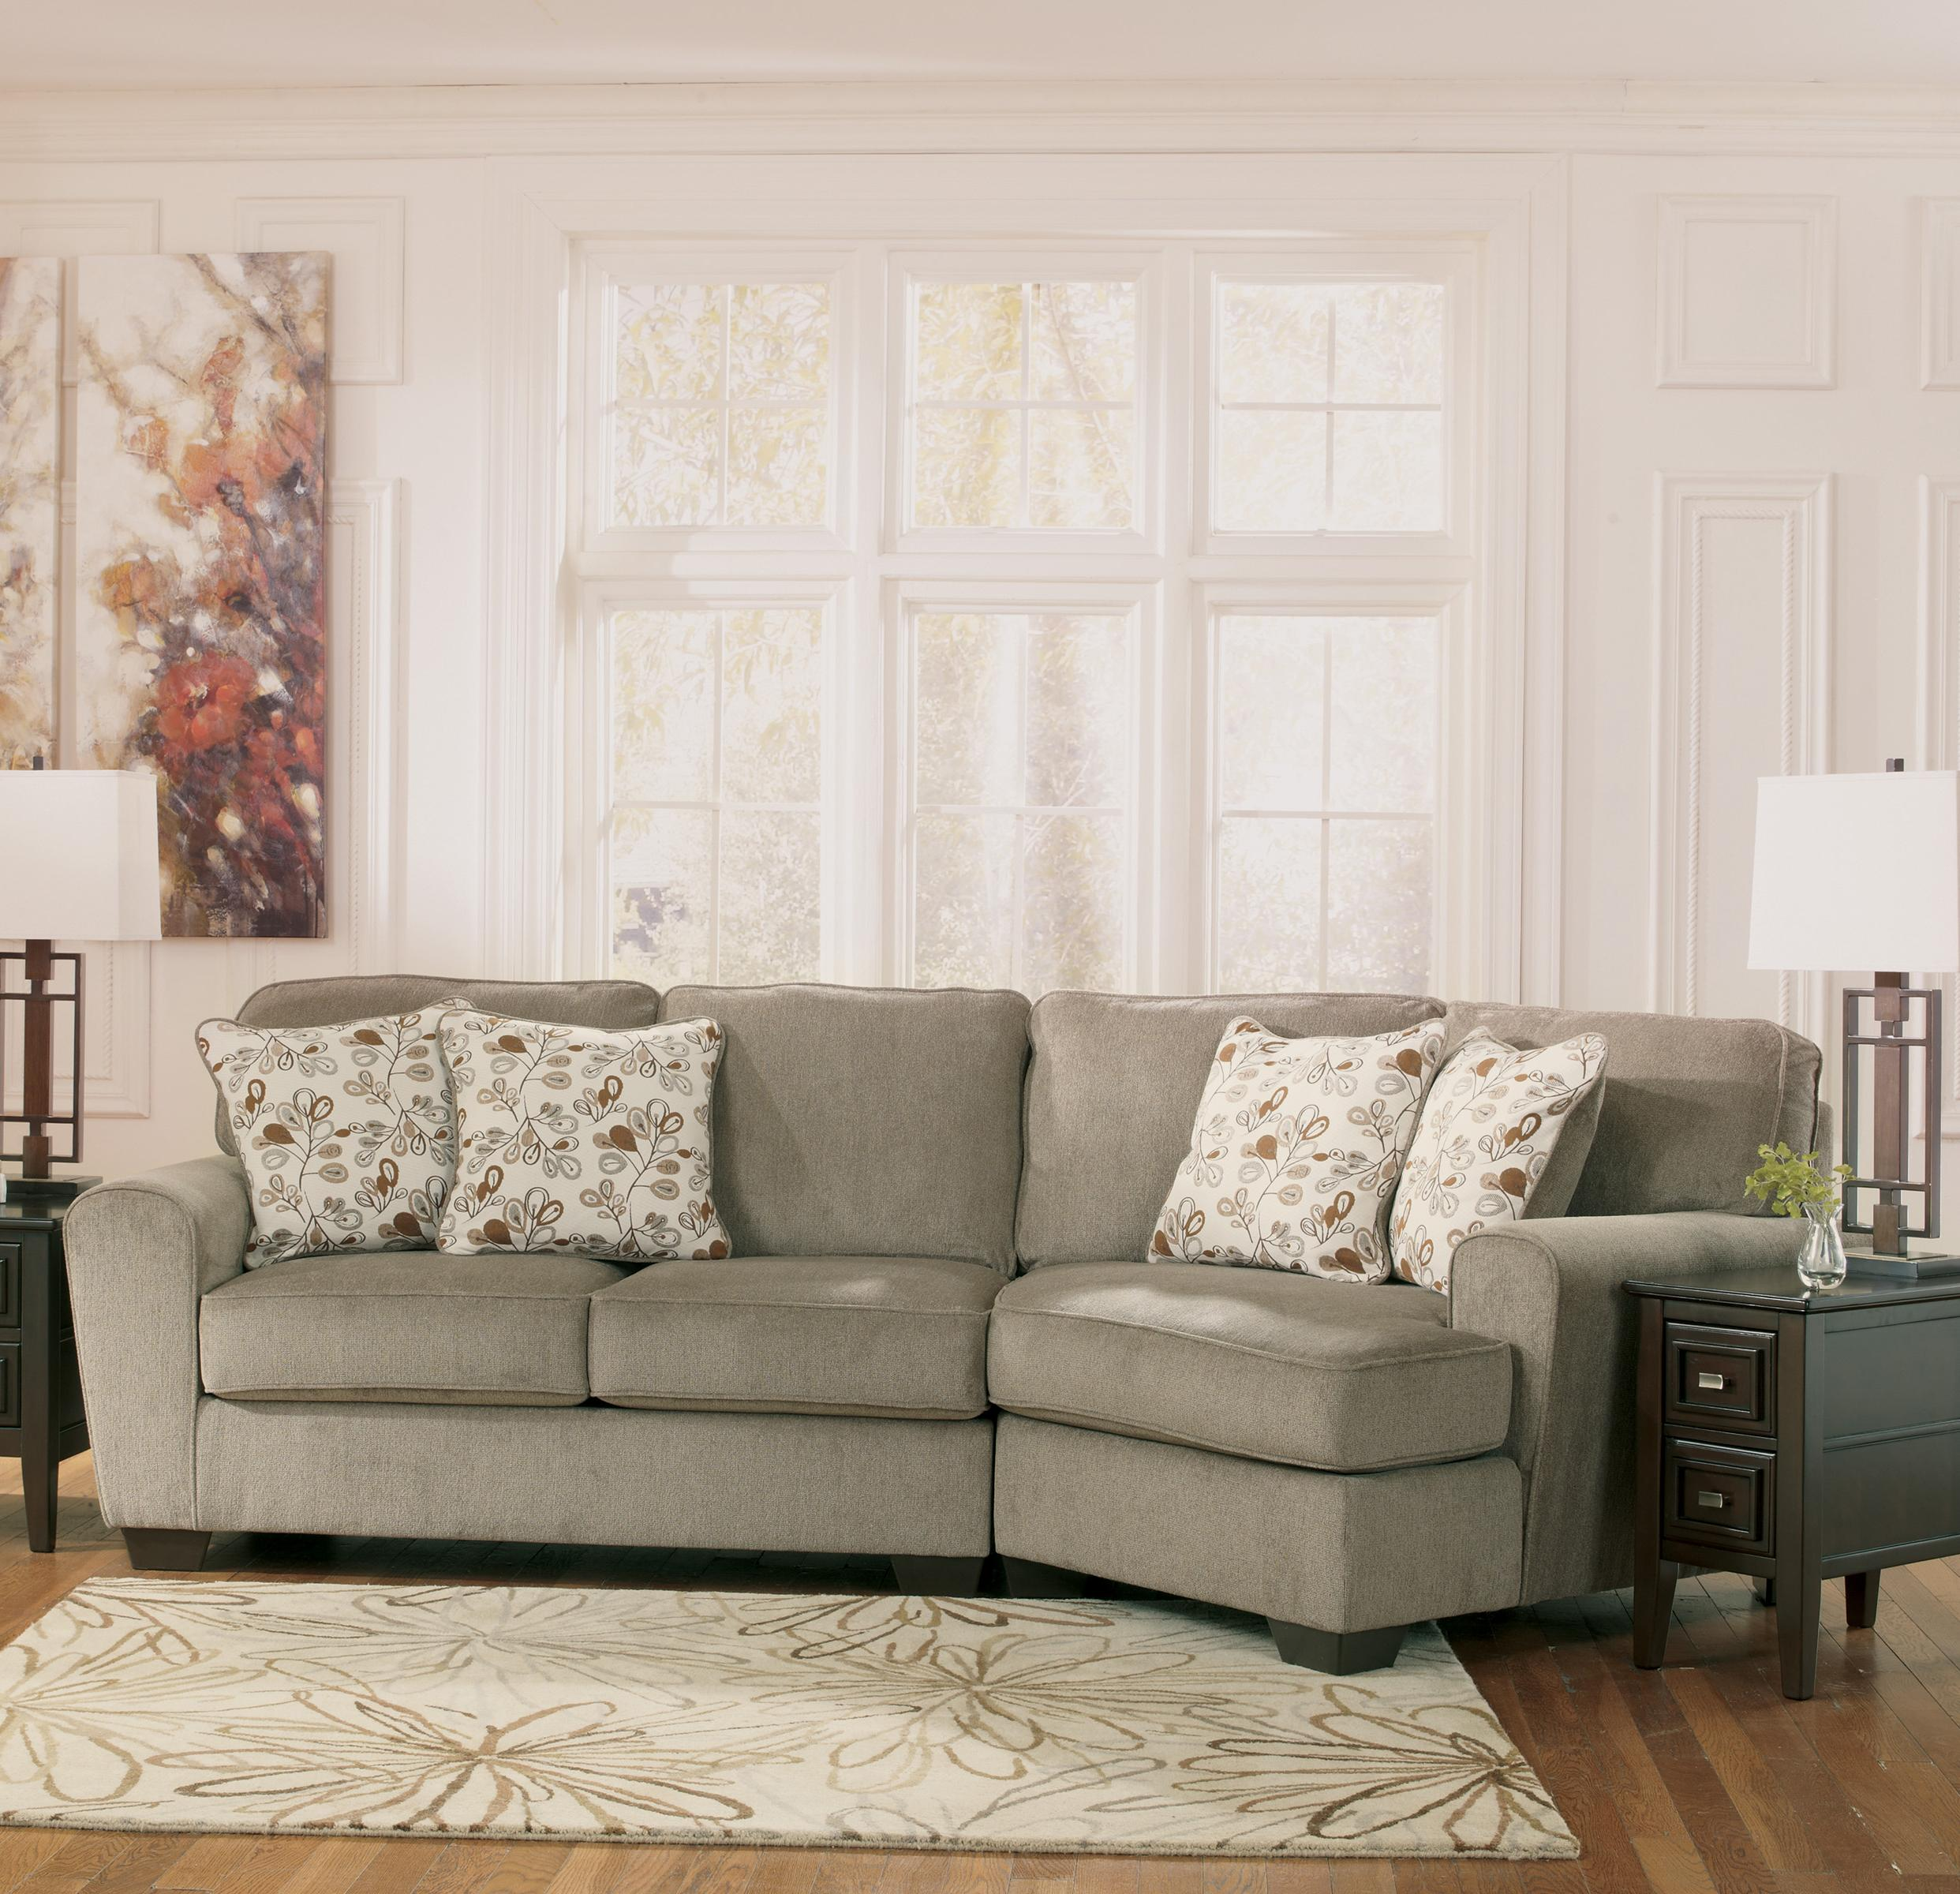 Ashley Furniture Patola Park Patina 2 Piece Sectional